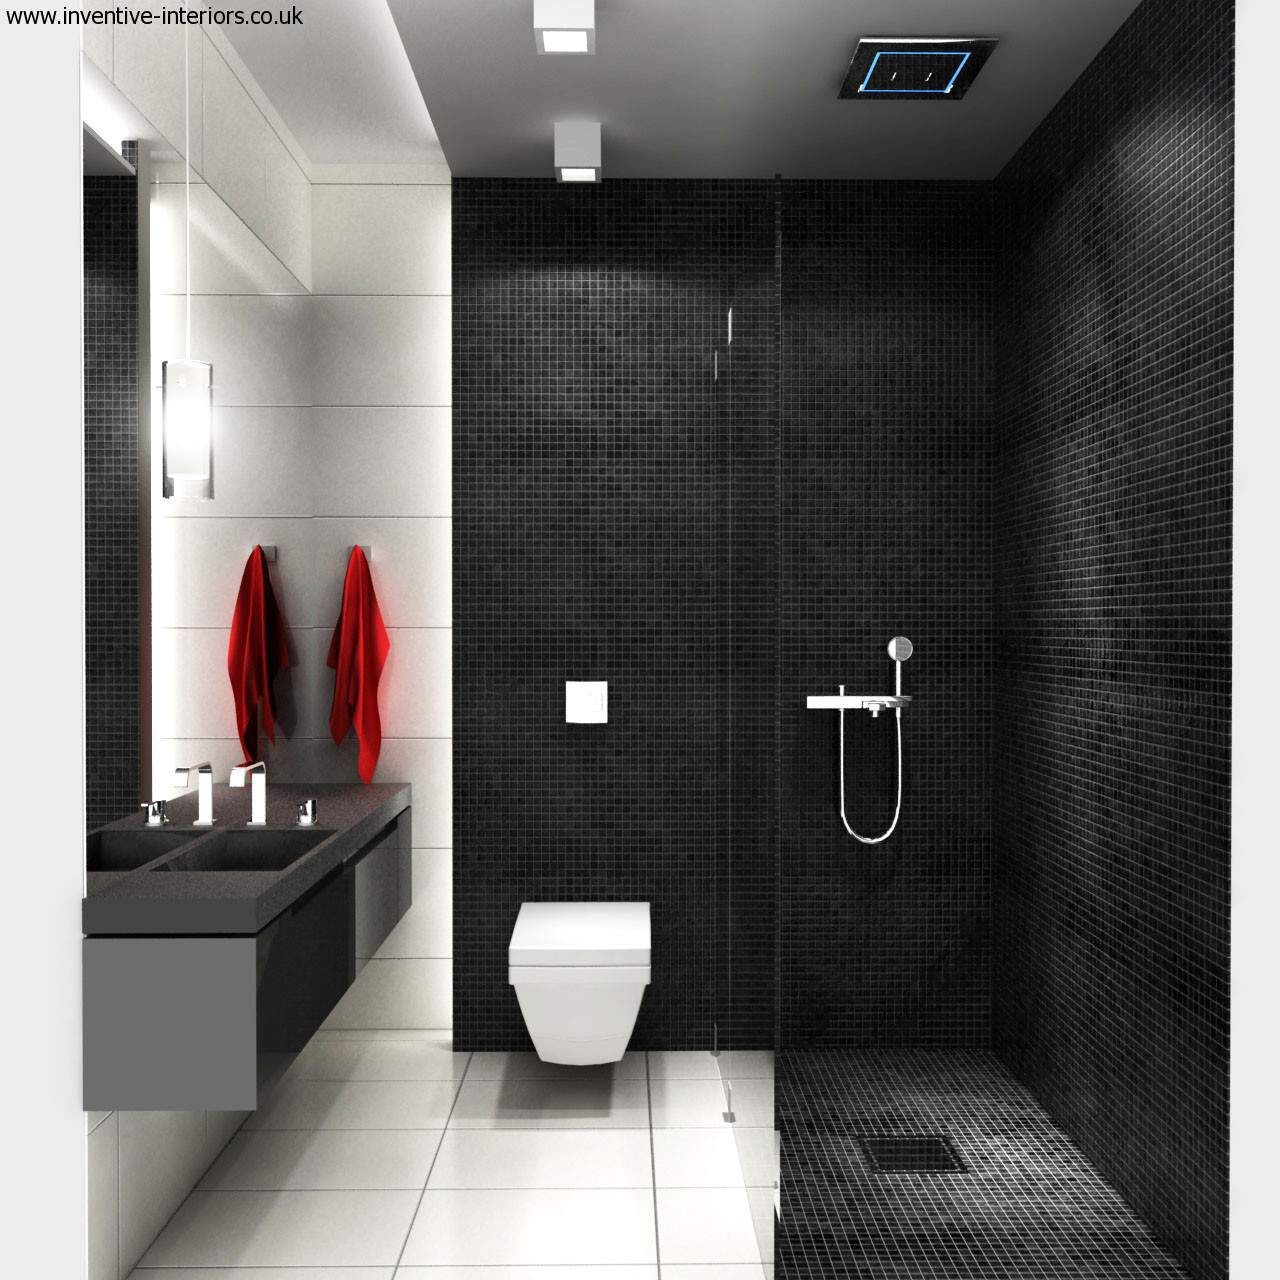 Gallery One black and white small bathroom interior design